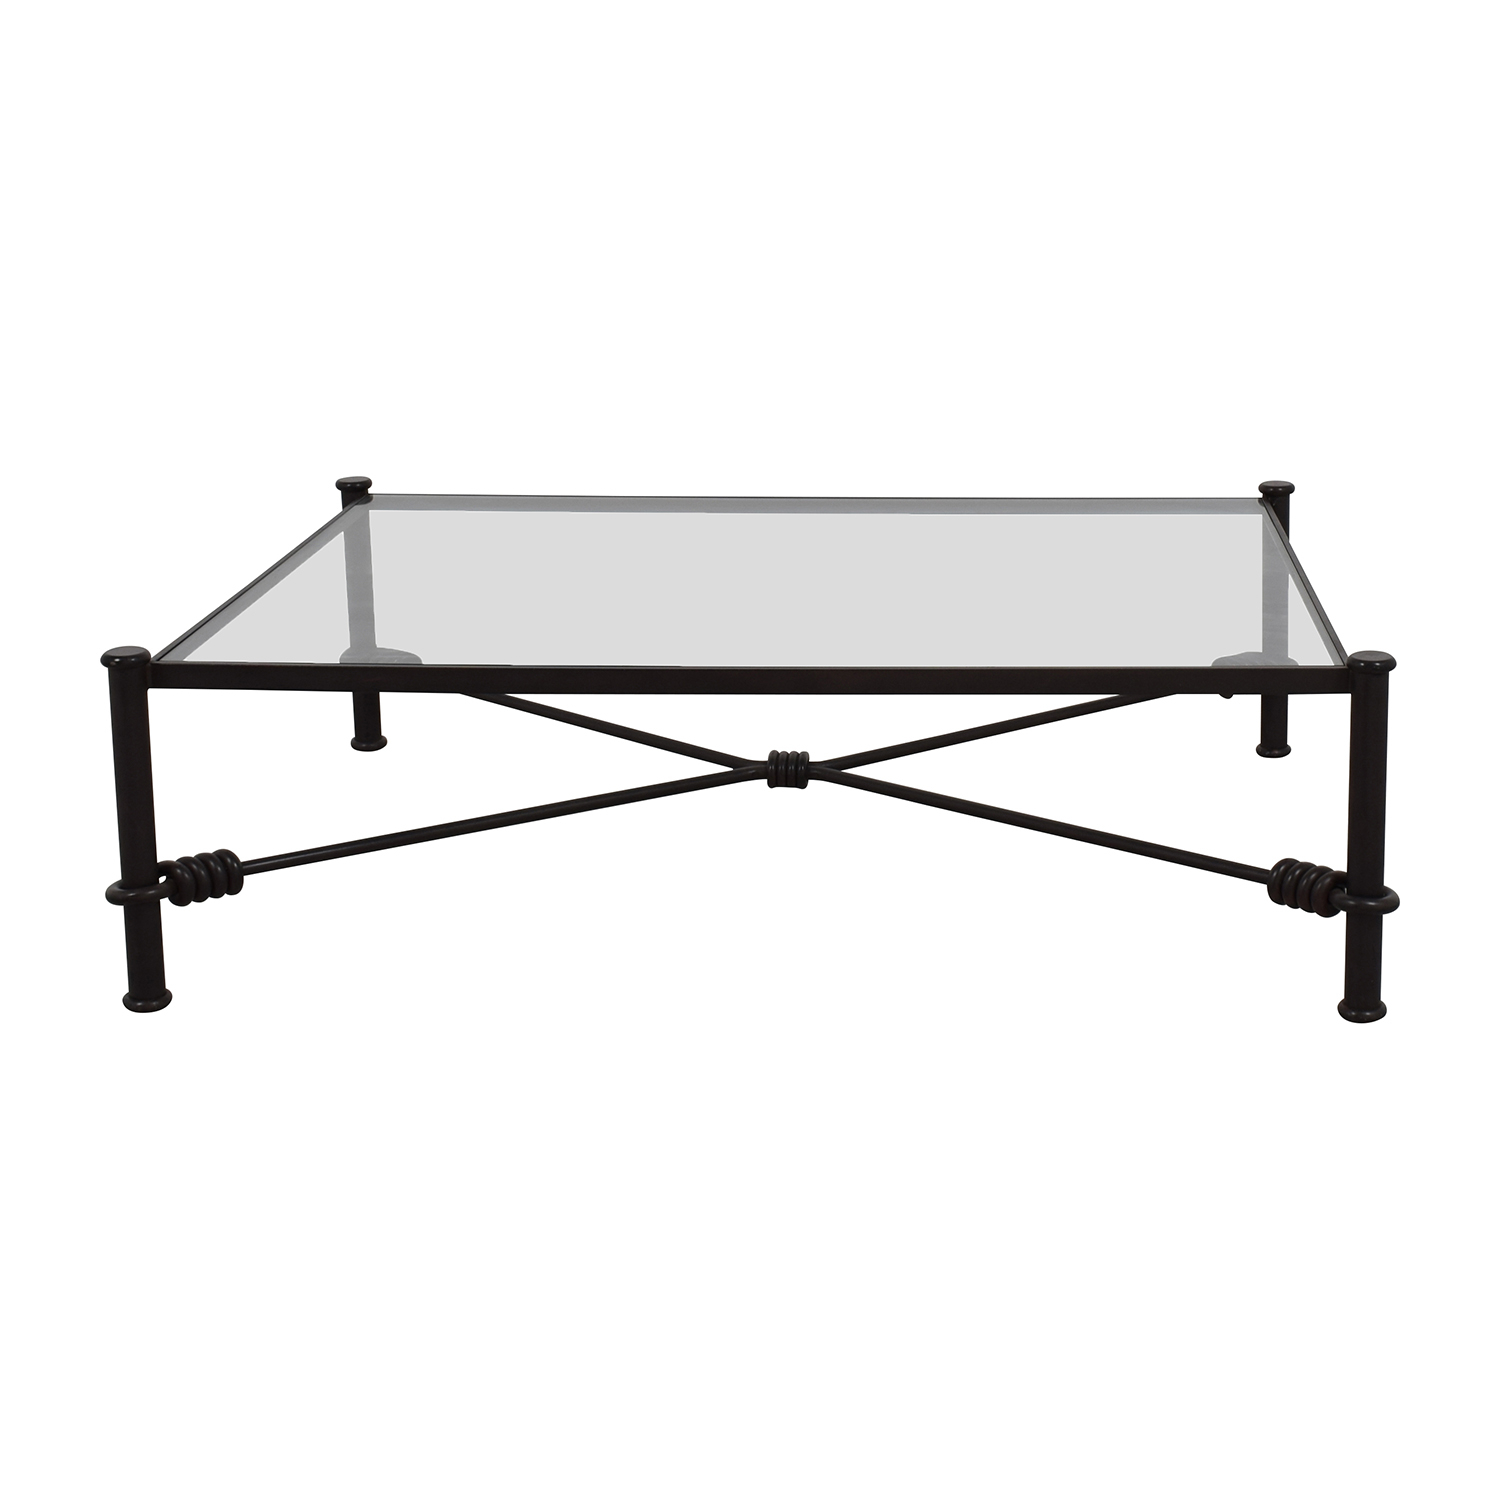 88 Off Black Wrought Iron Glass Coffee Table Tables with regard to dimensions 1500 X 1500